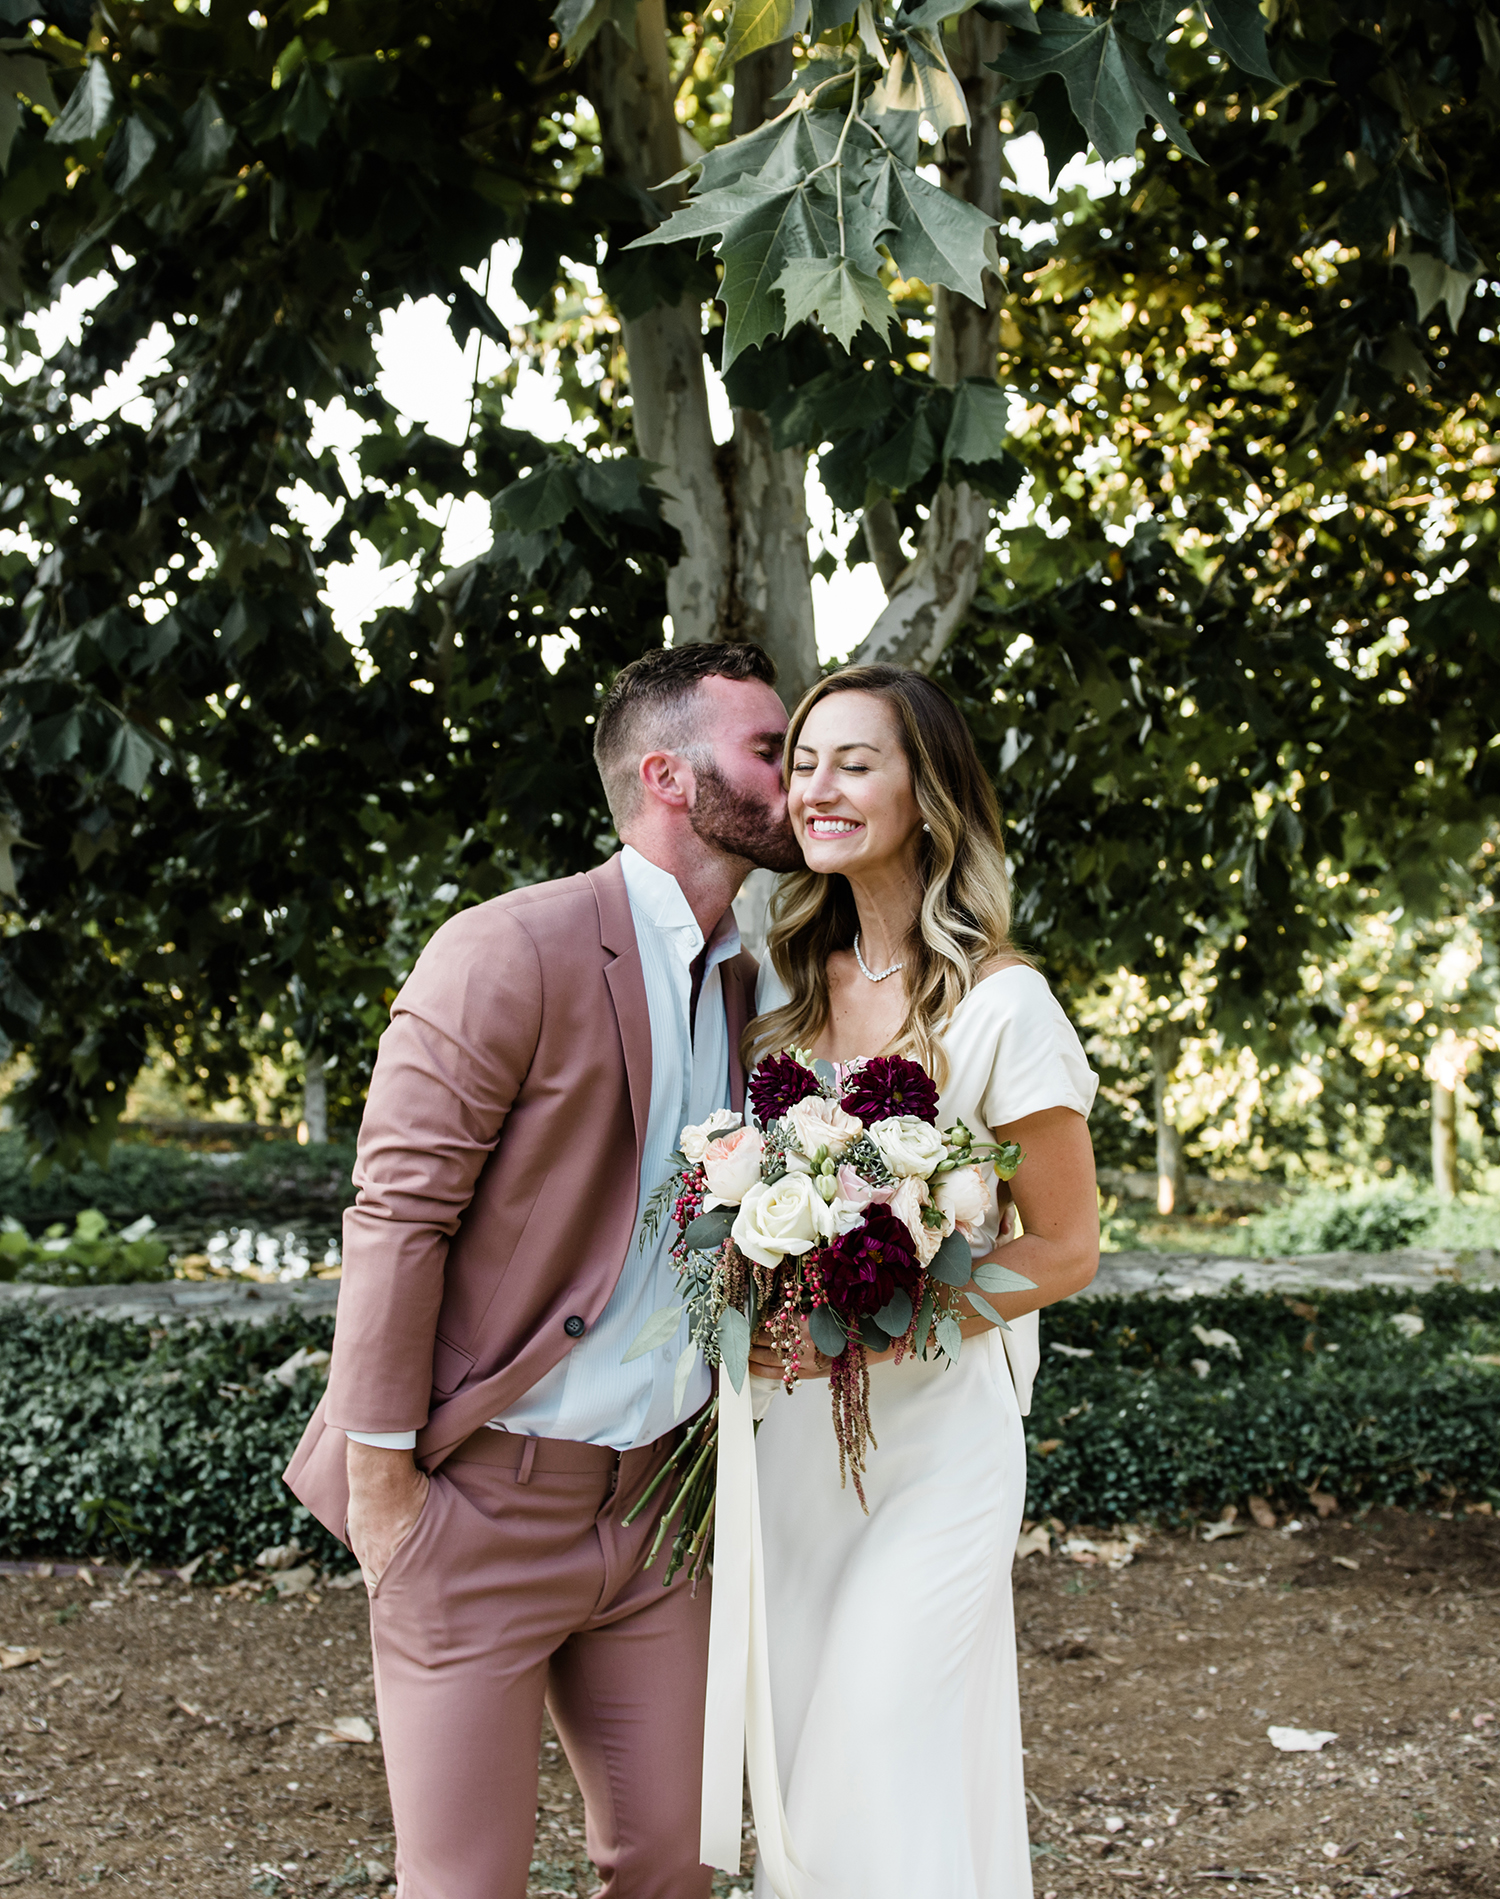 livvyland-blog-olivia-watson-wedding-villa-del-lago-austin-texas-fall-blush-burgundy-classic-romantic-1